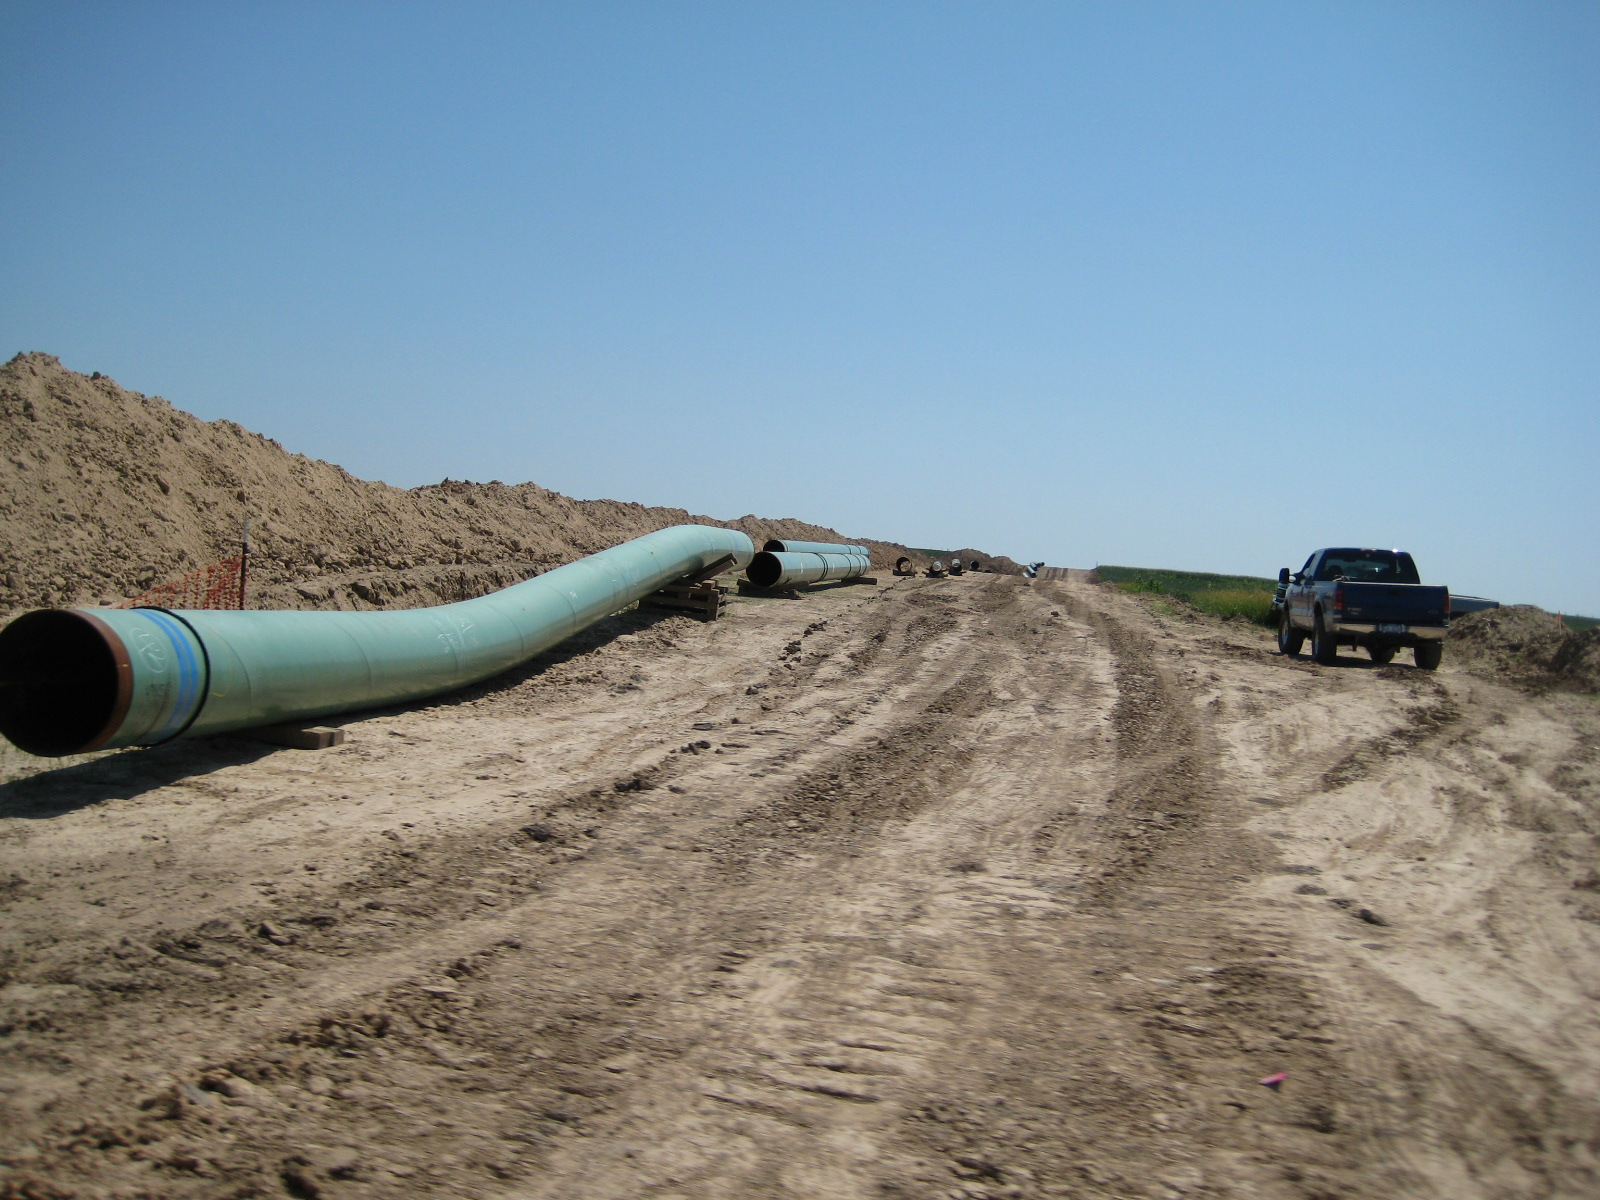 NEBRASKA VOTES YES TO THE KEYSTONE XL PIPELINE EXPANSION